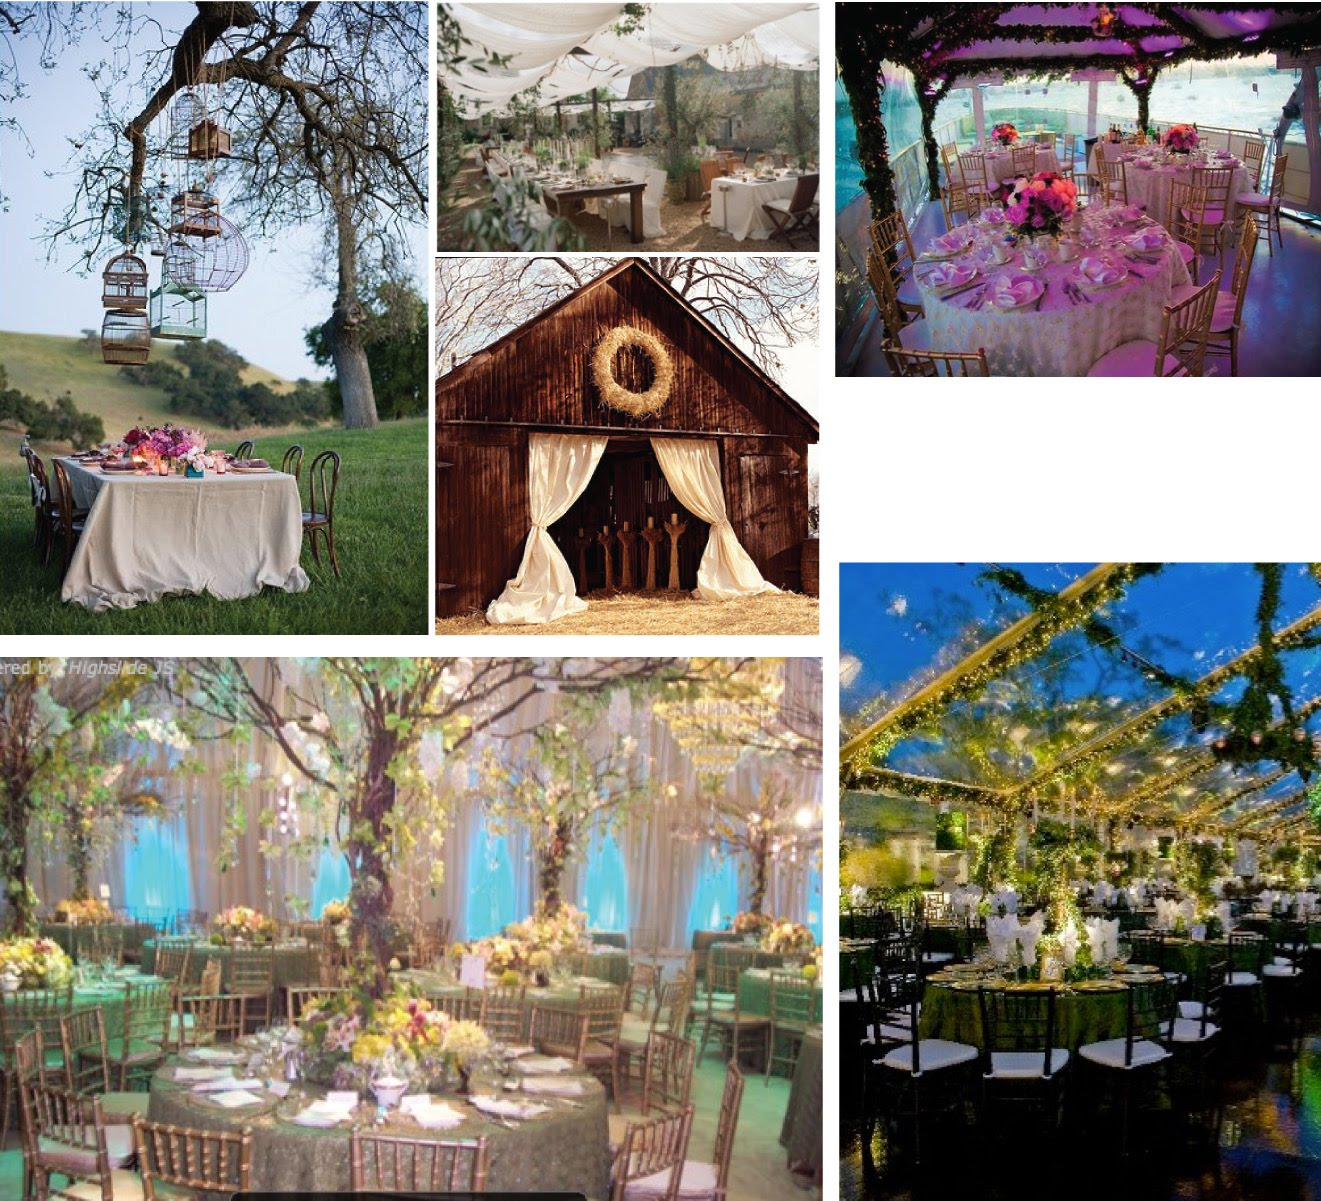 Jevon S Blog Enchanted Forest Themed